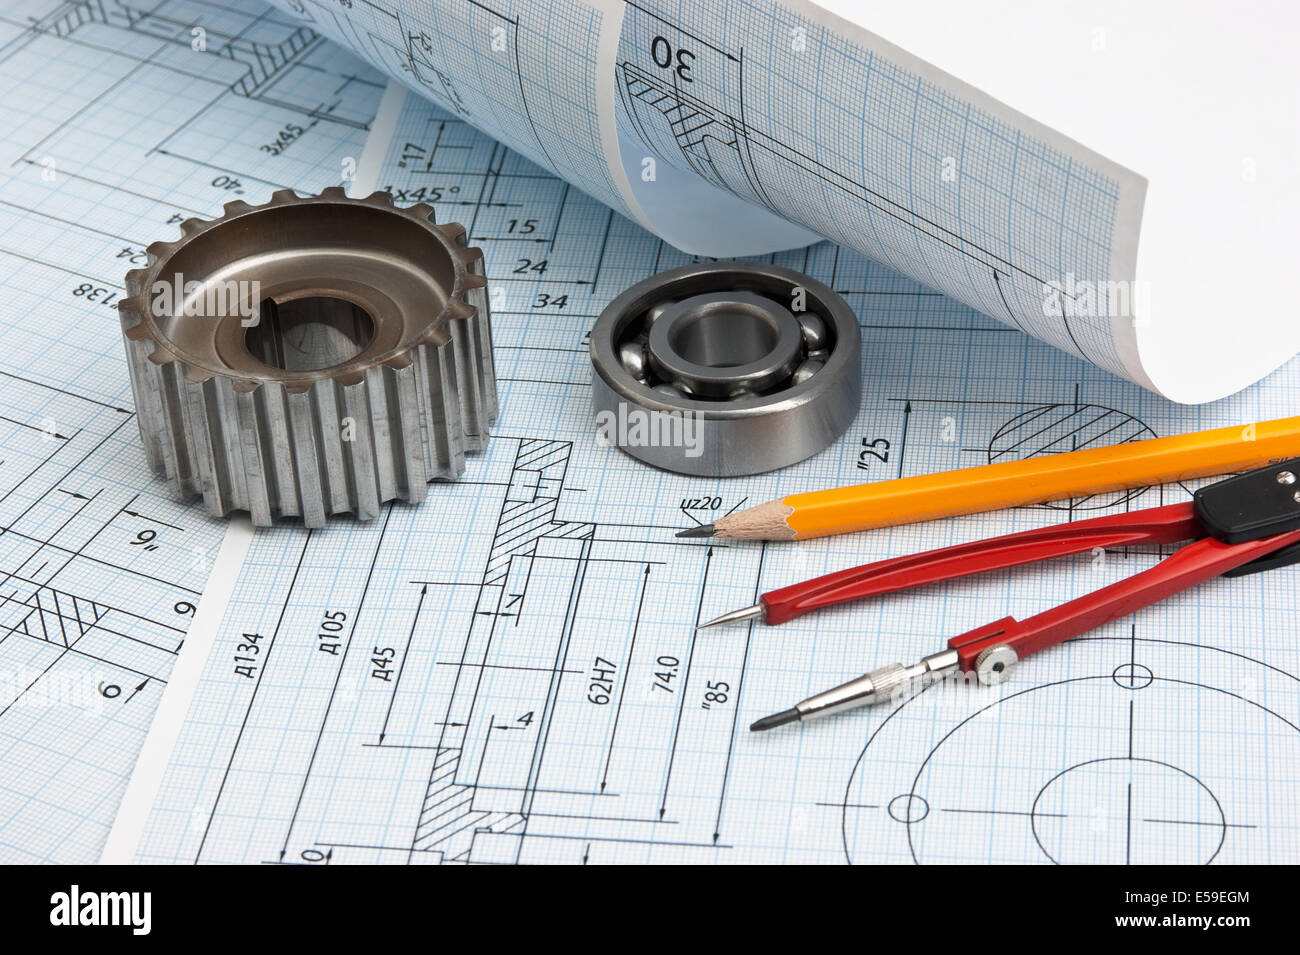 Technical Drawing Tools Stock Photos & Technical Drawing